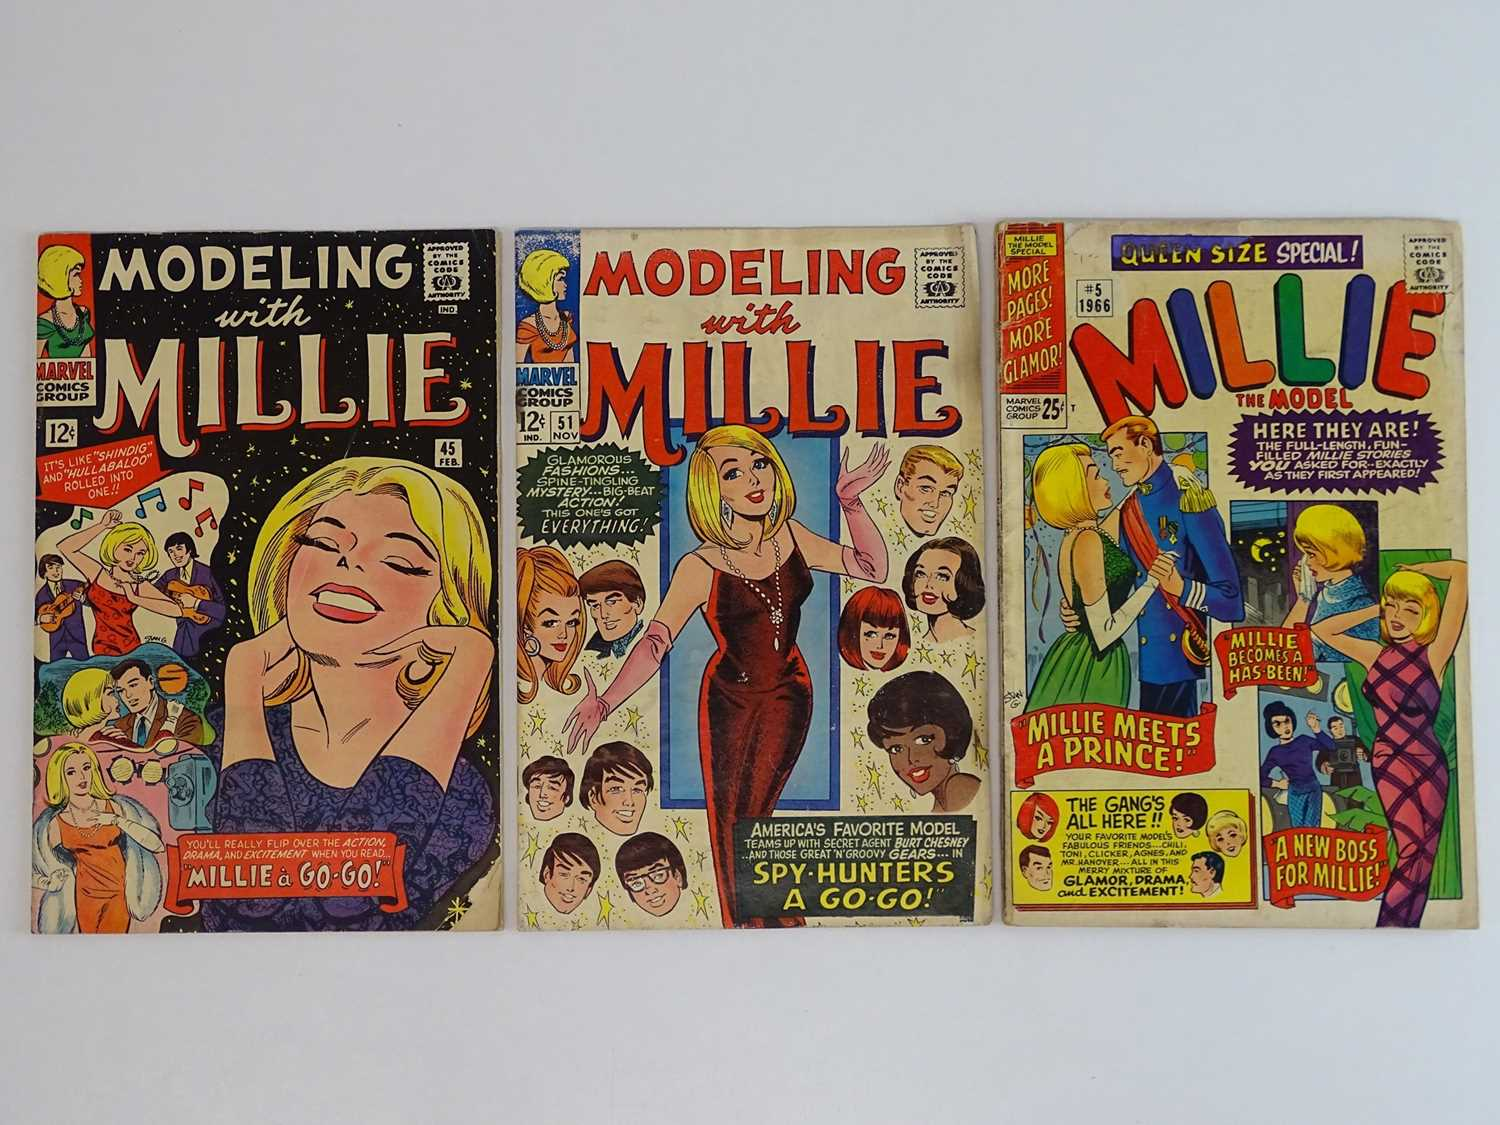 MODELLING WITH MILLIE #145 & 51 + MILLIE THE MODEL QUEEN-SIZE SPECIAL #5 - (3 in Lot) - (1965/66 -